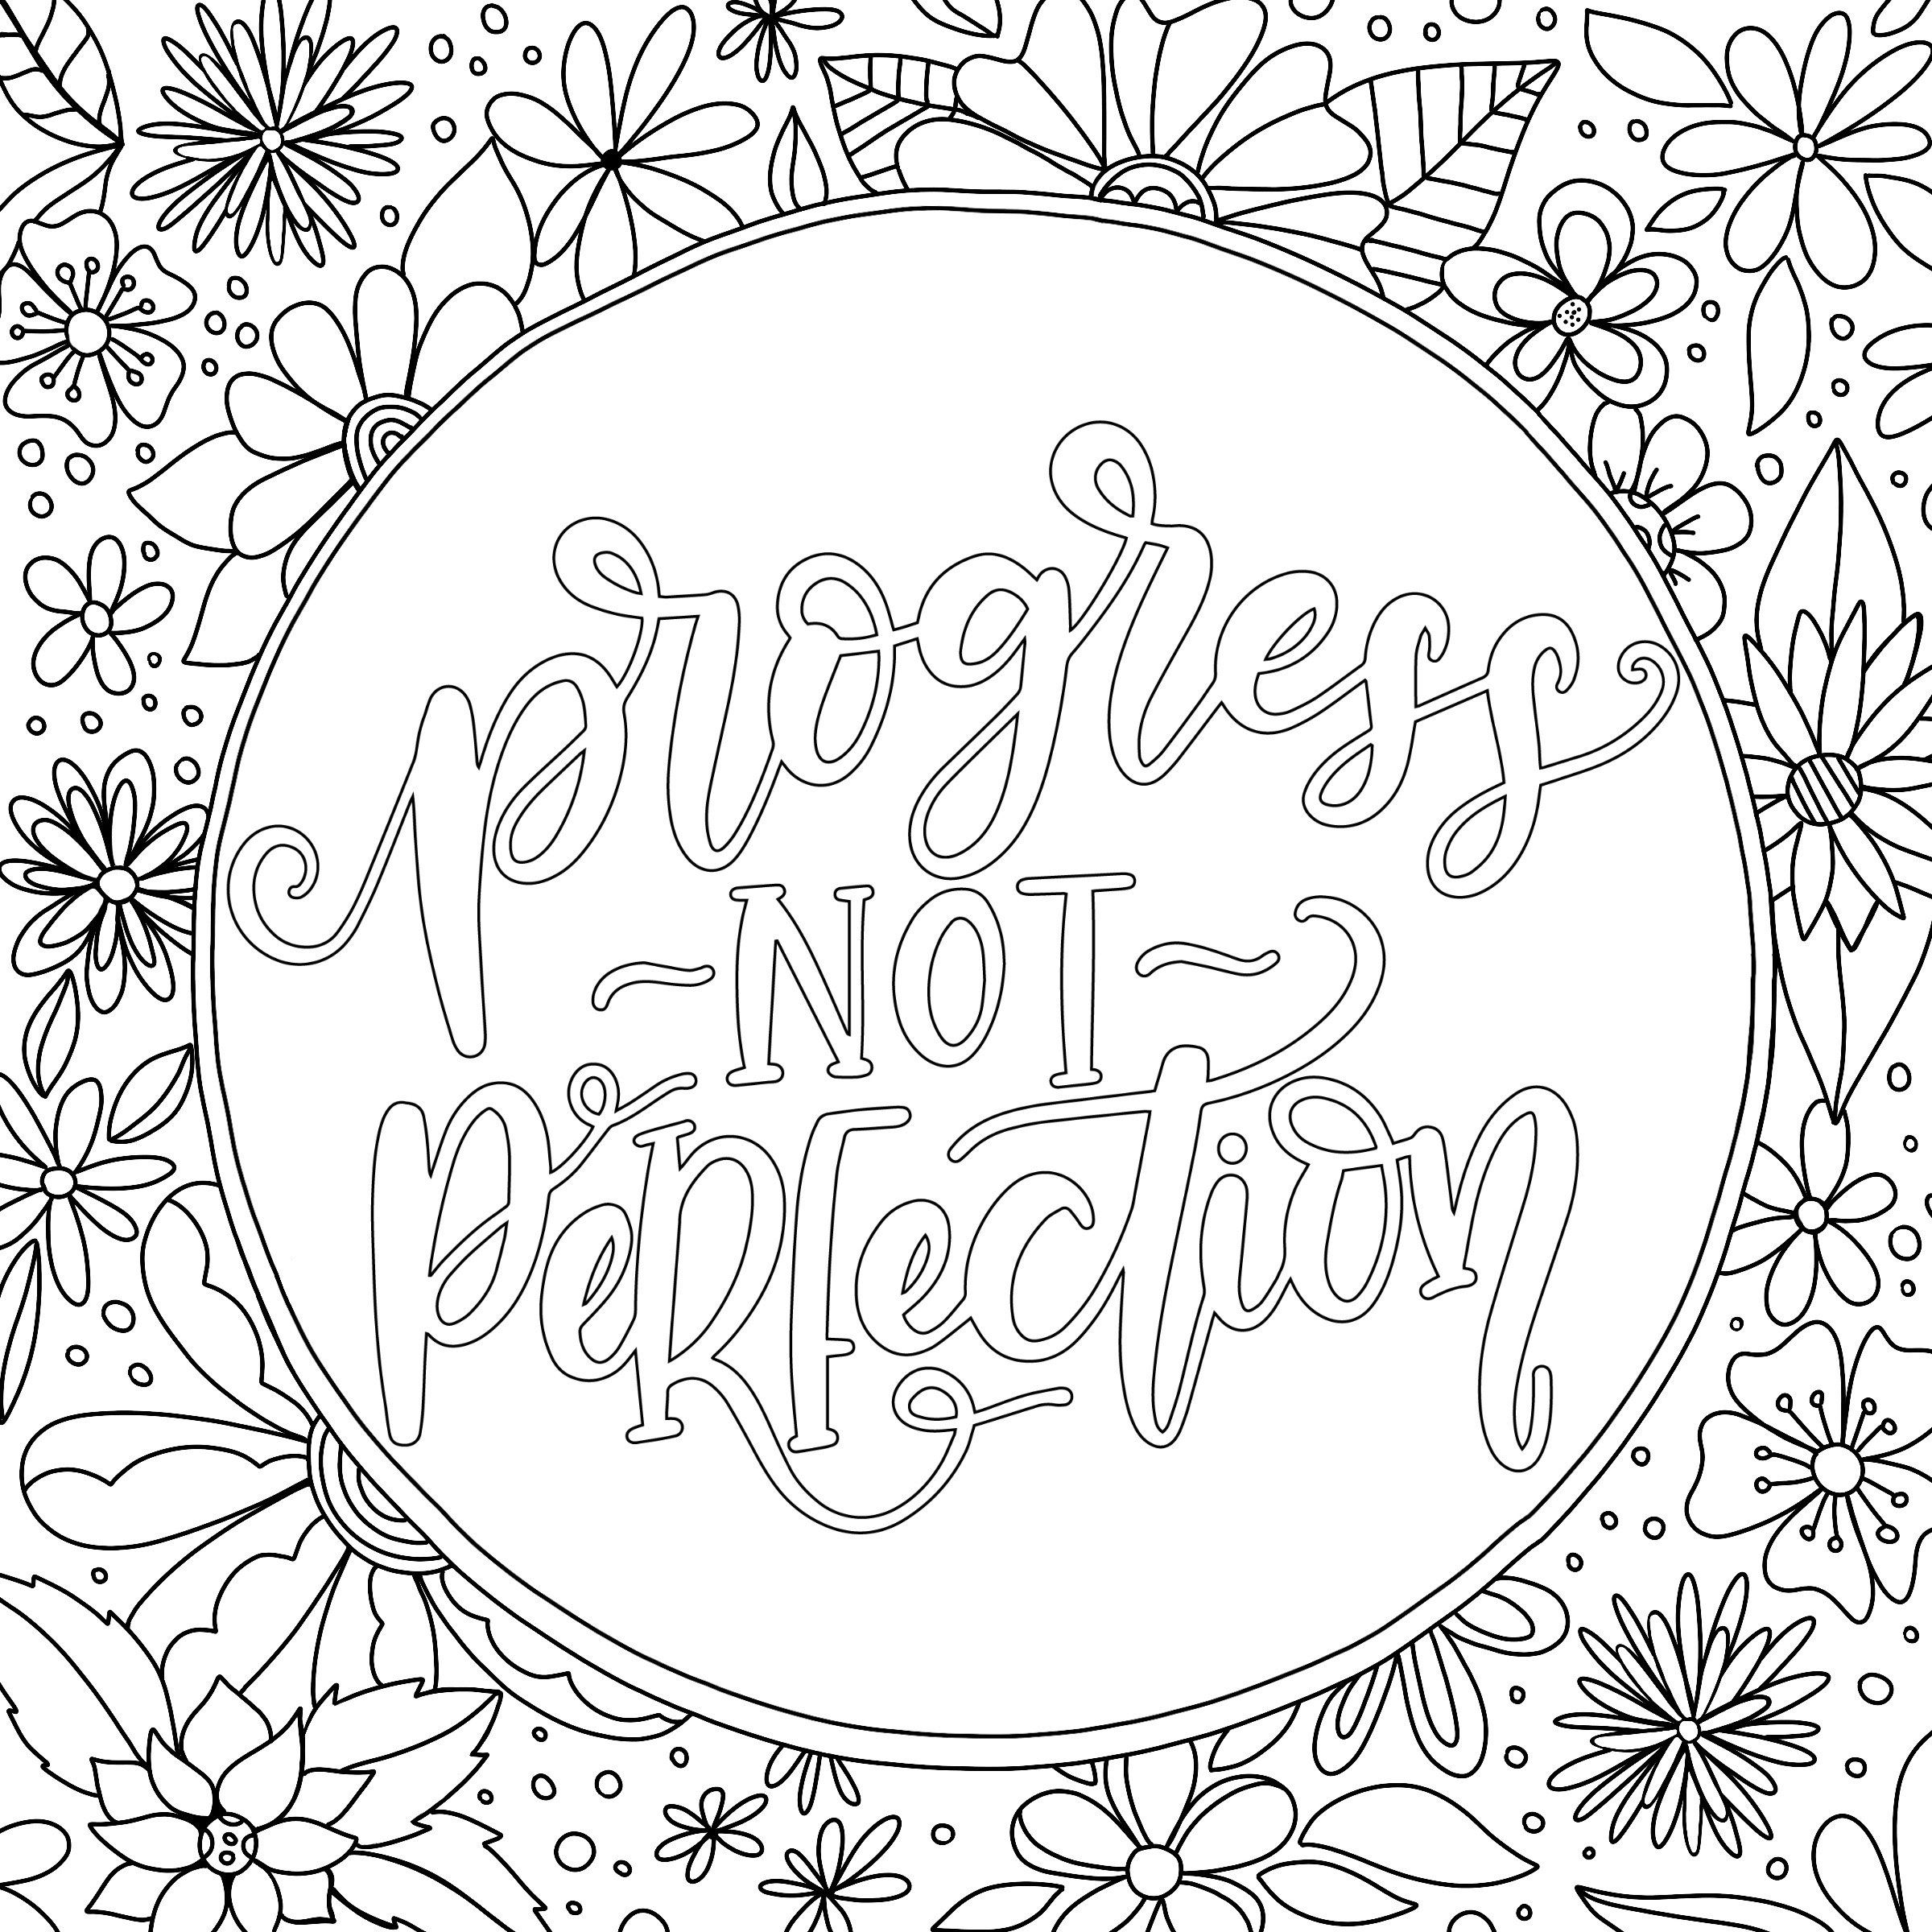 coloring pages inspirational inspirational quotes coloring pages for adults pages coloring inspirational